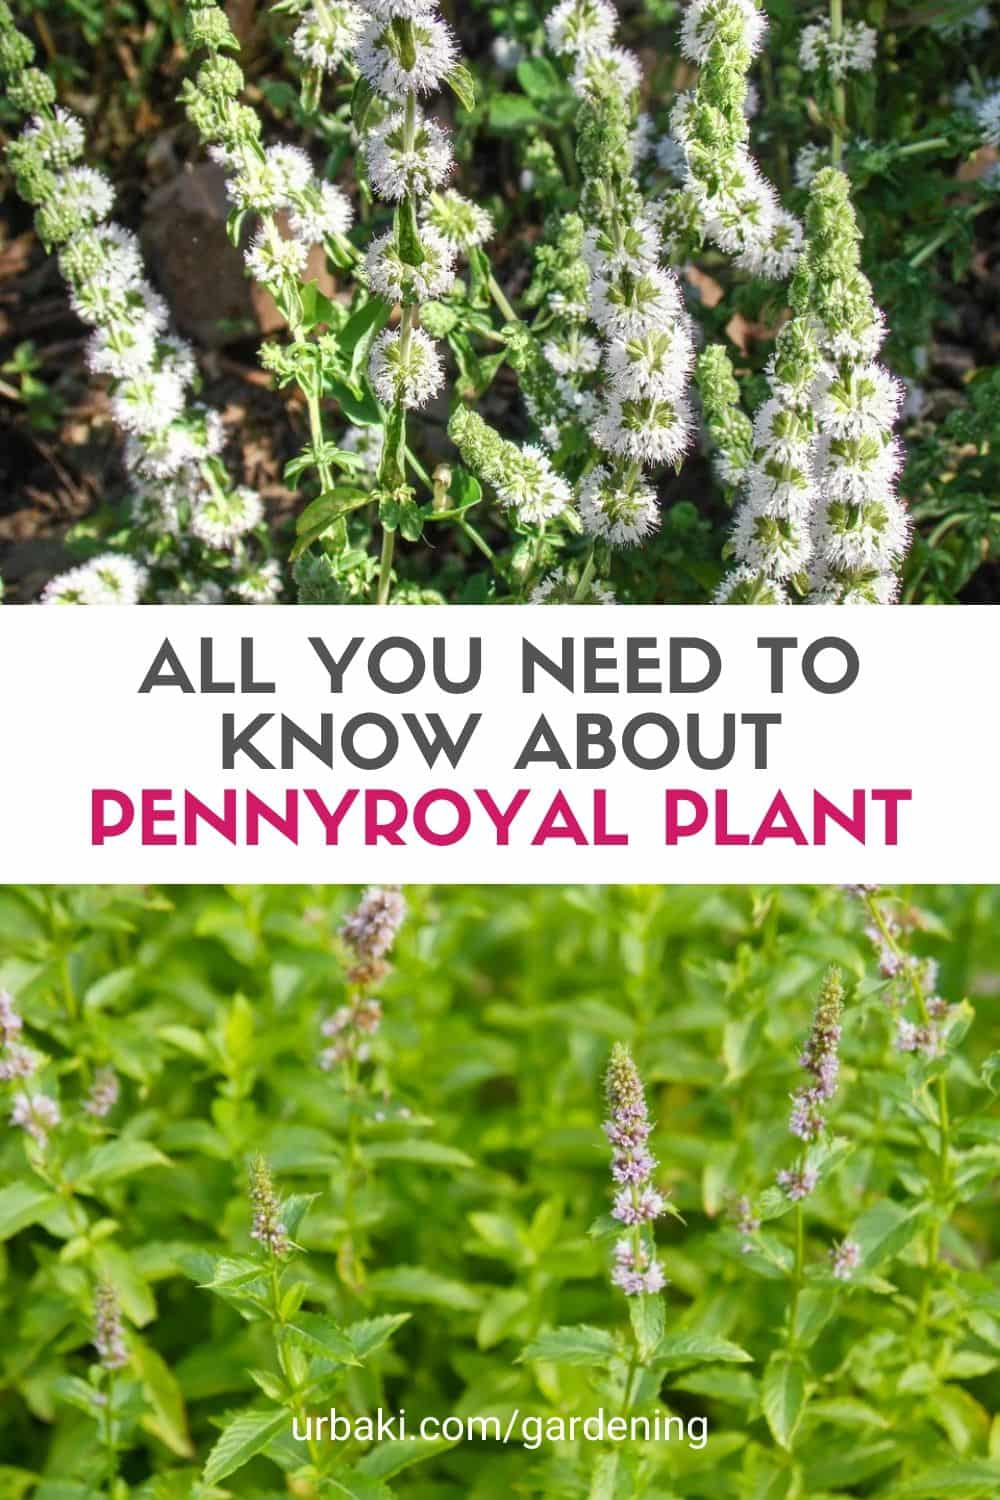 All You Need To Know about Pennyroyal Plant